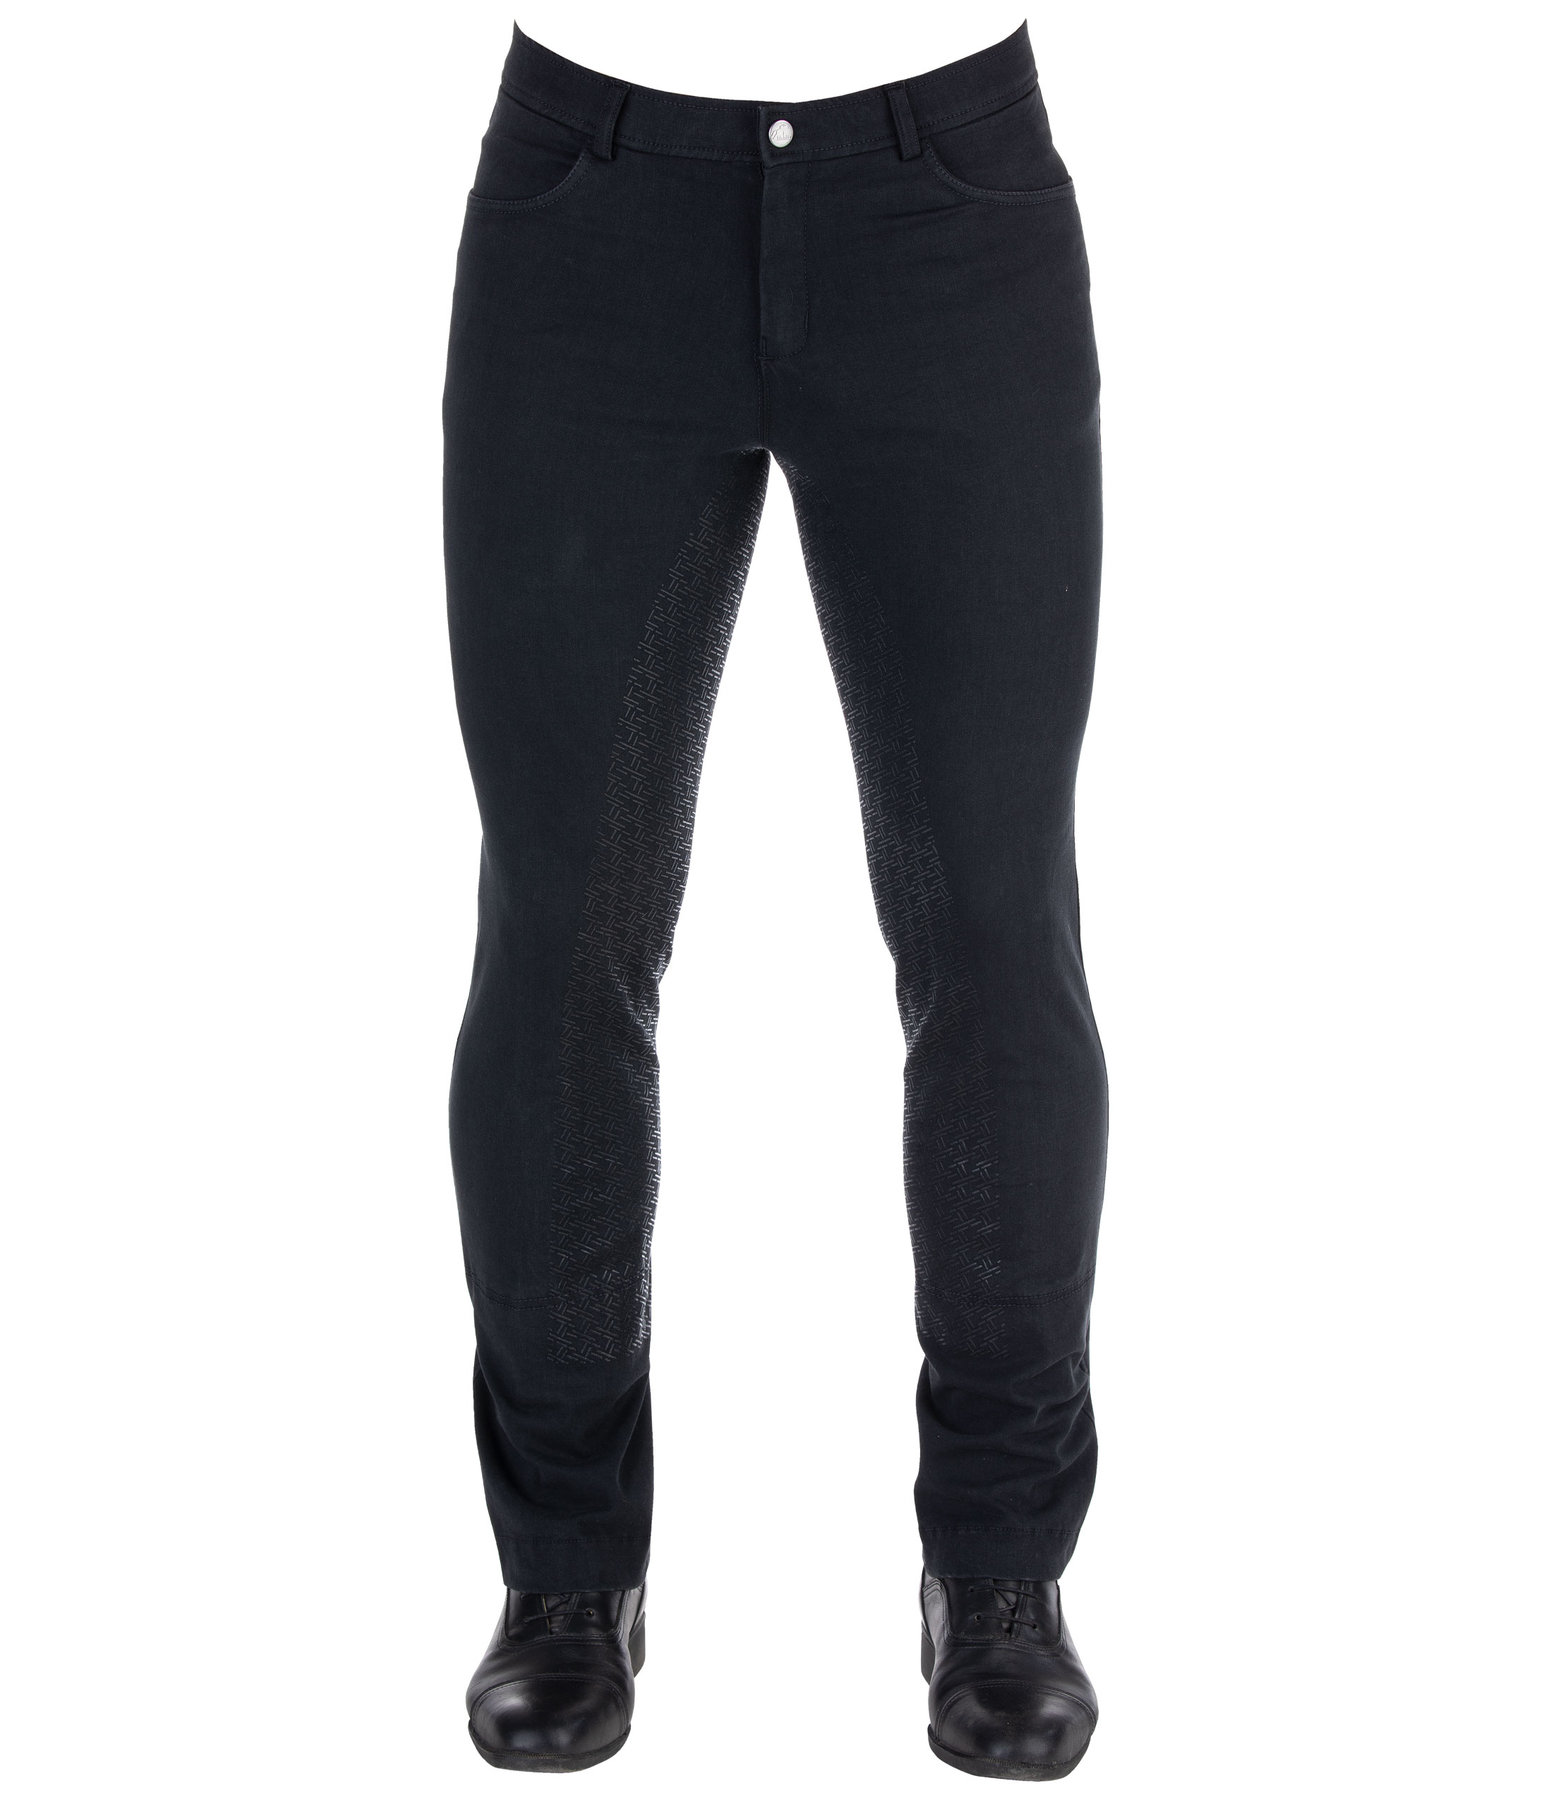 Men's Jodhpur Grip Full-Seat Denim Breeches Owen